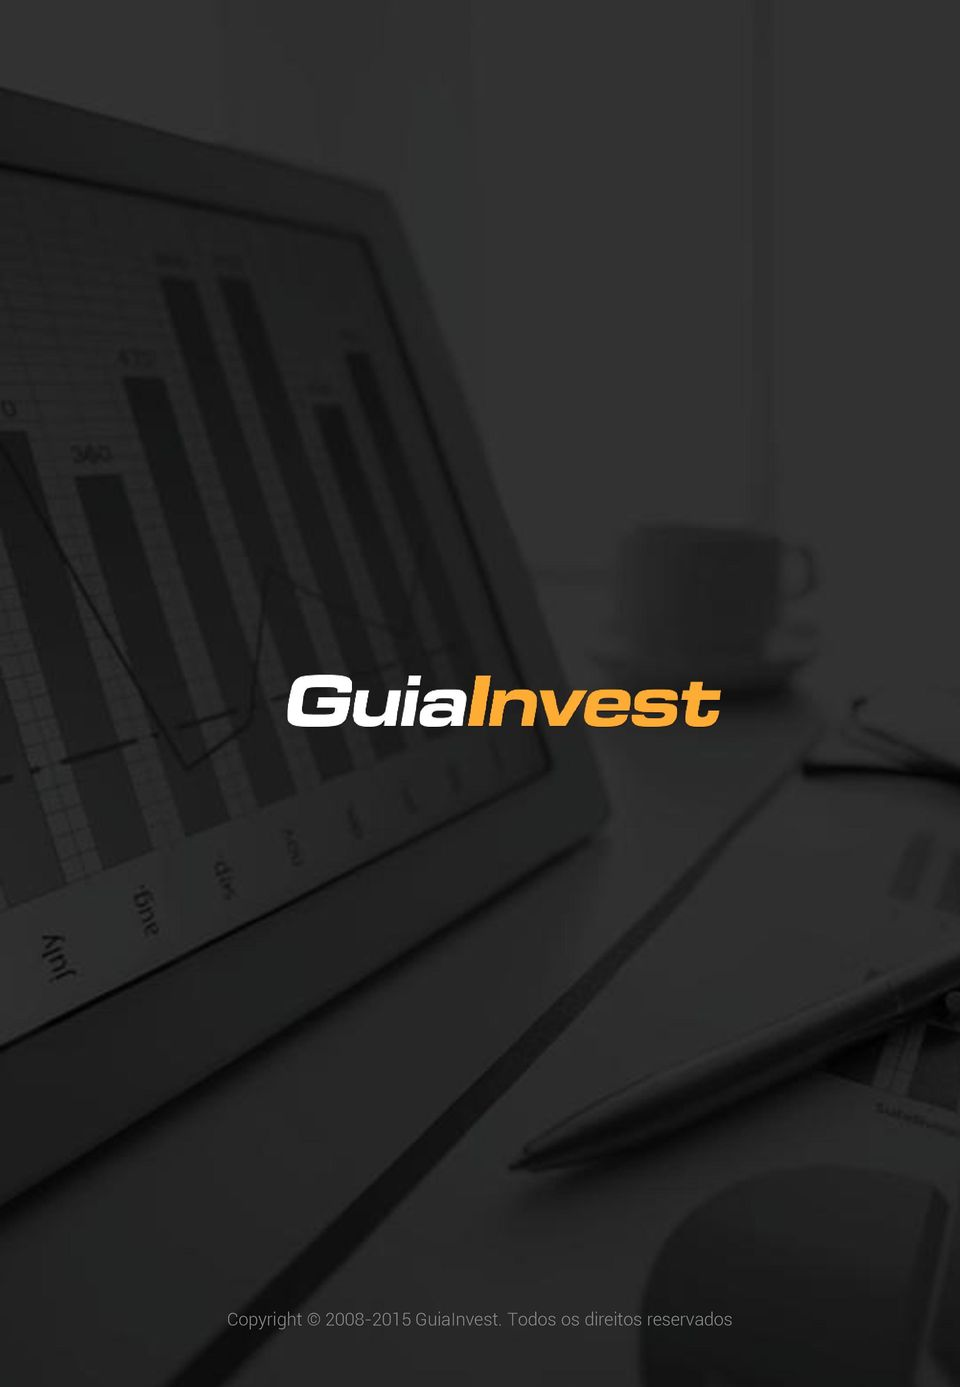 GuiaInvest.